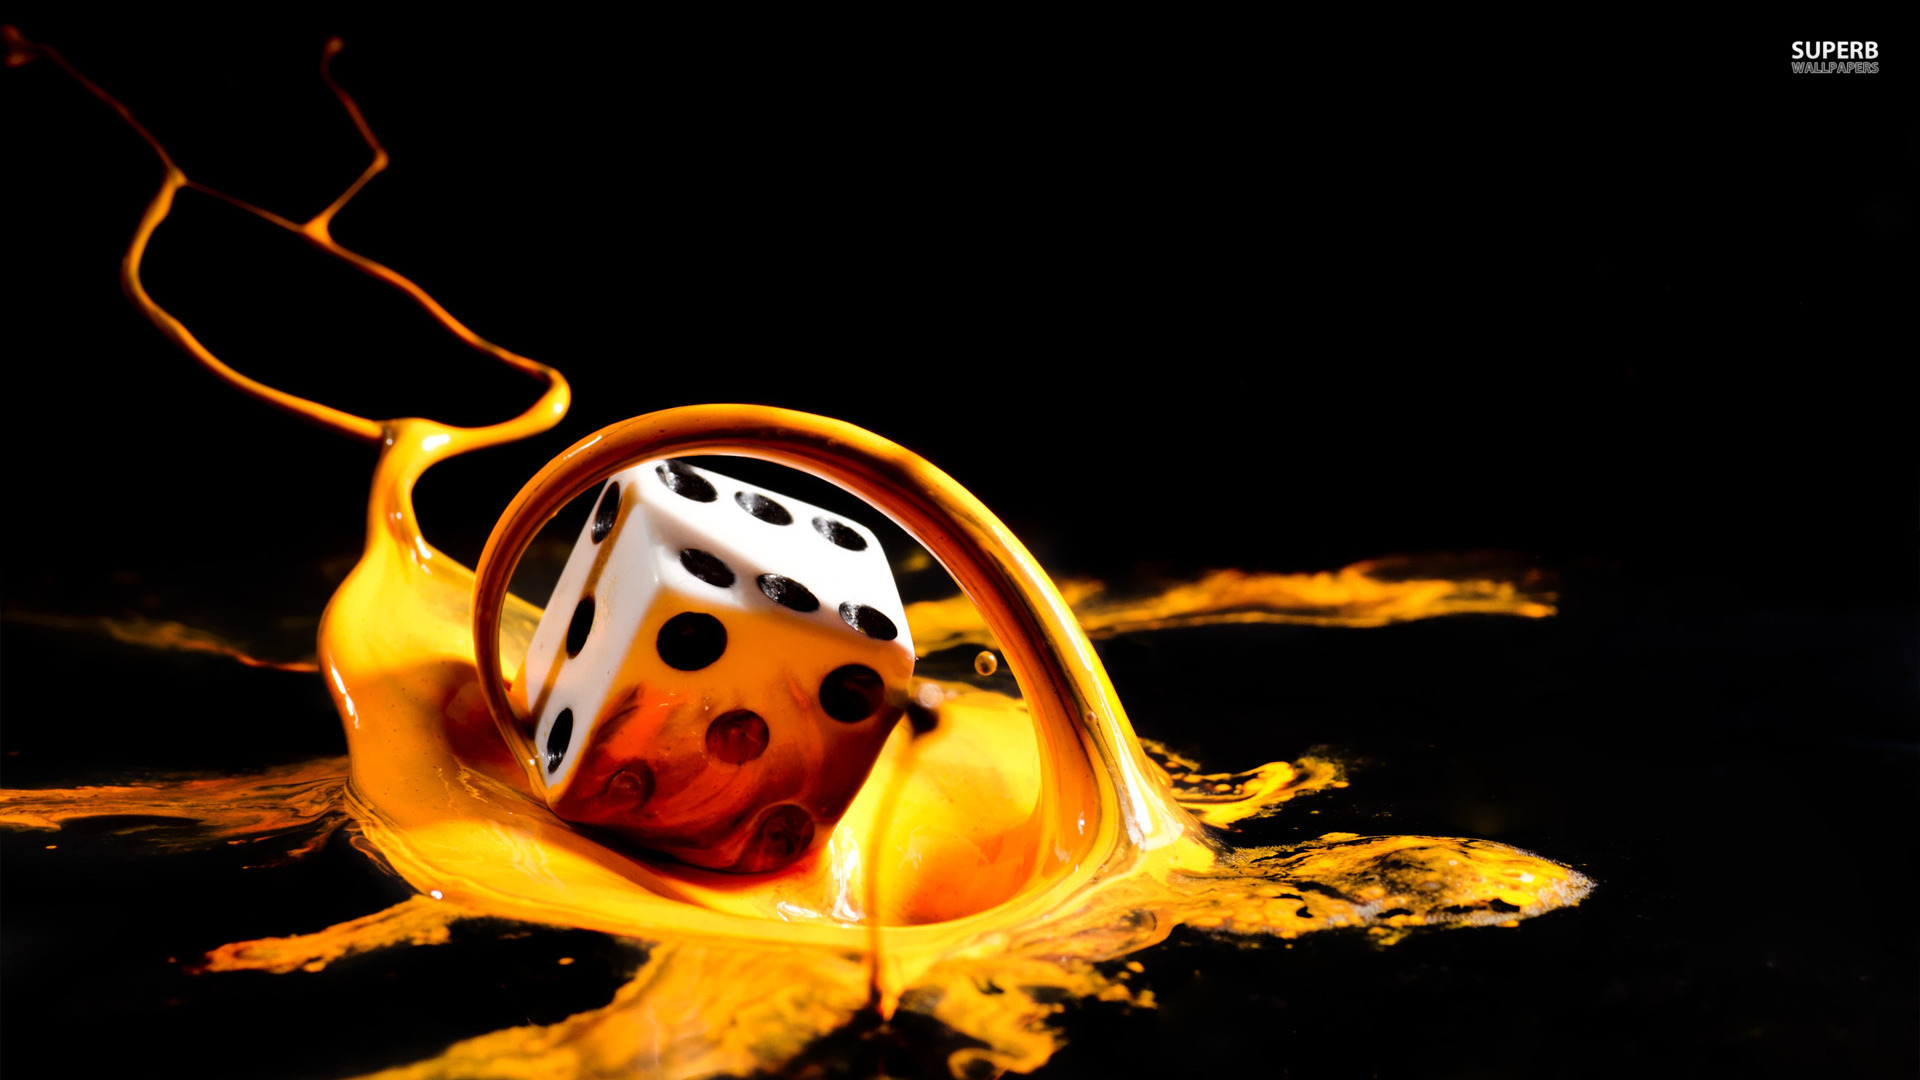 Dice in paint splash wallpaper 1920x1080